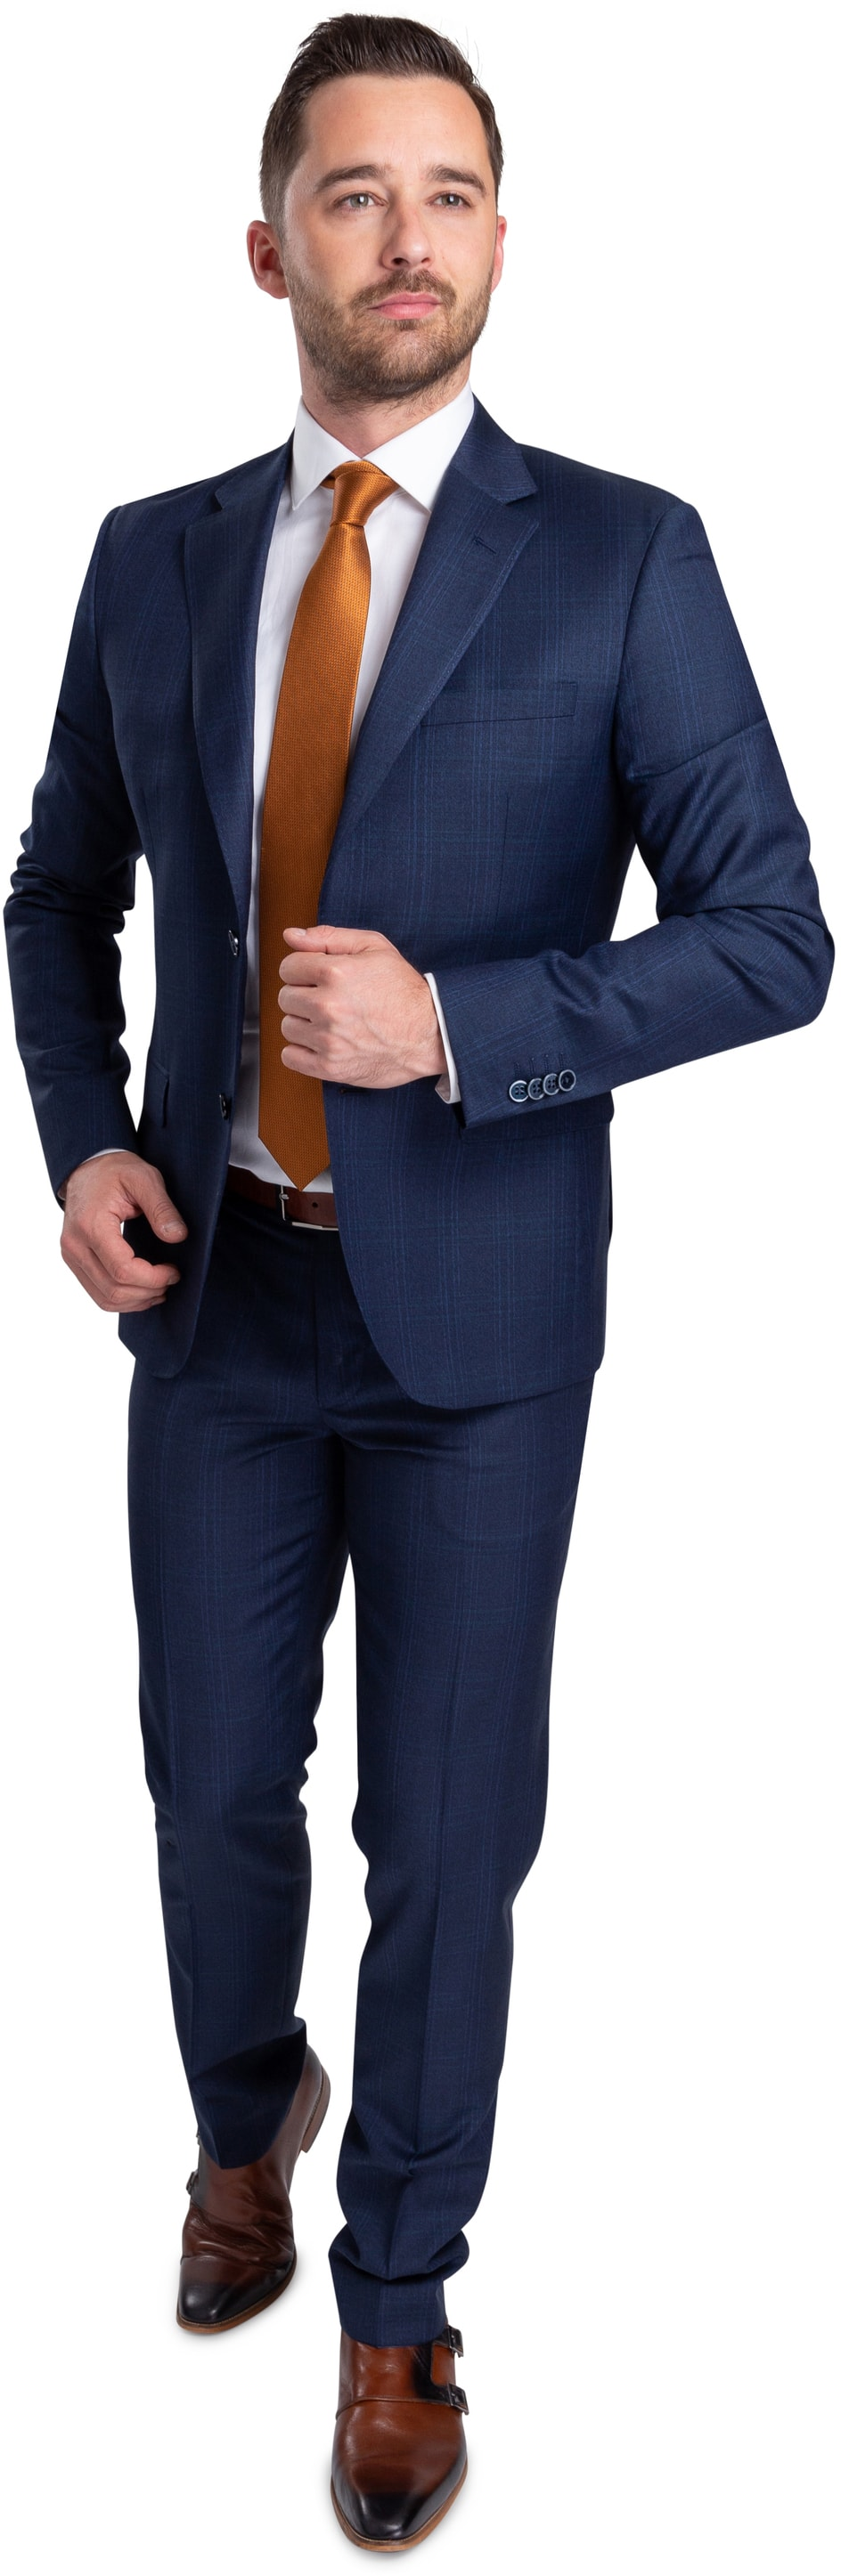 Suitable Suit Strato Navy Checks photo 0